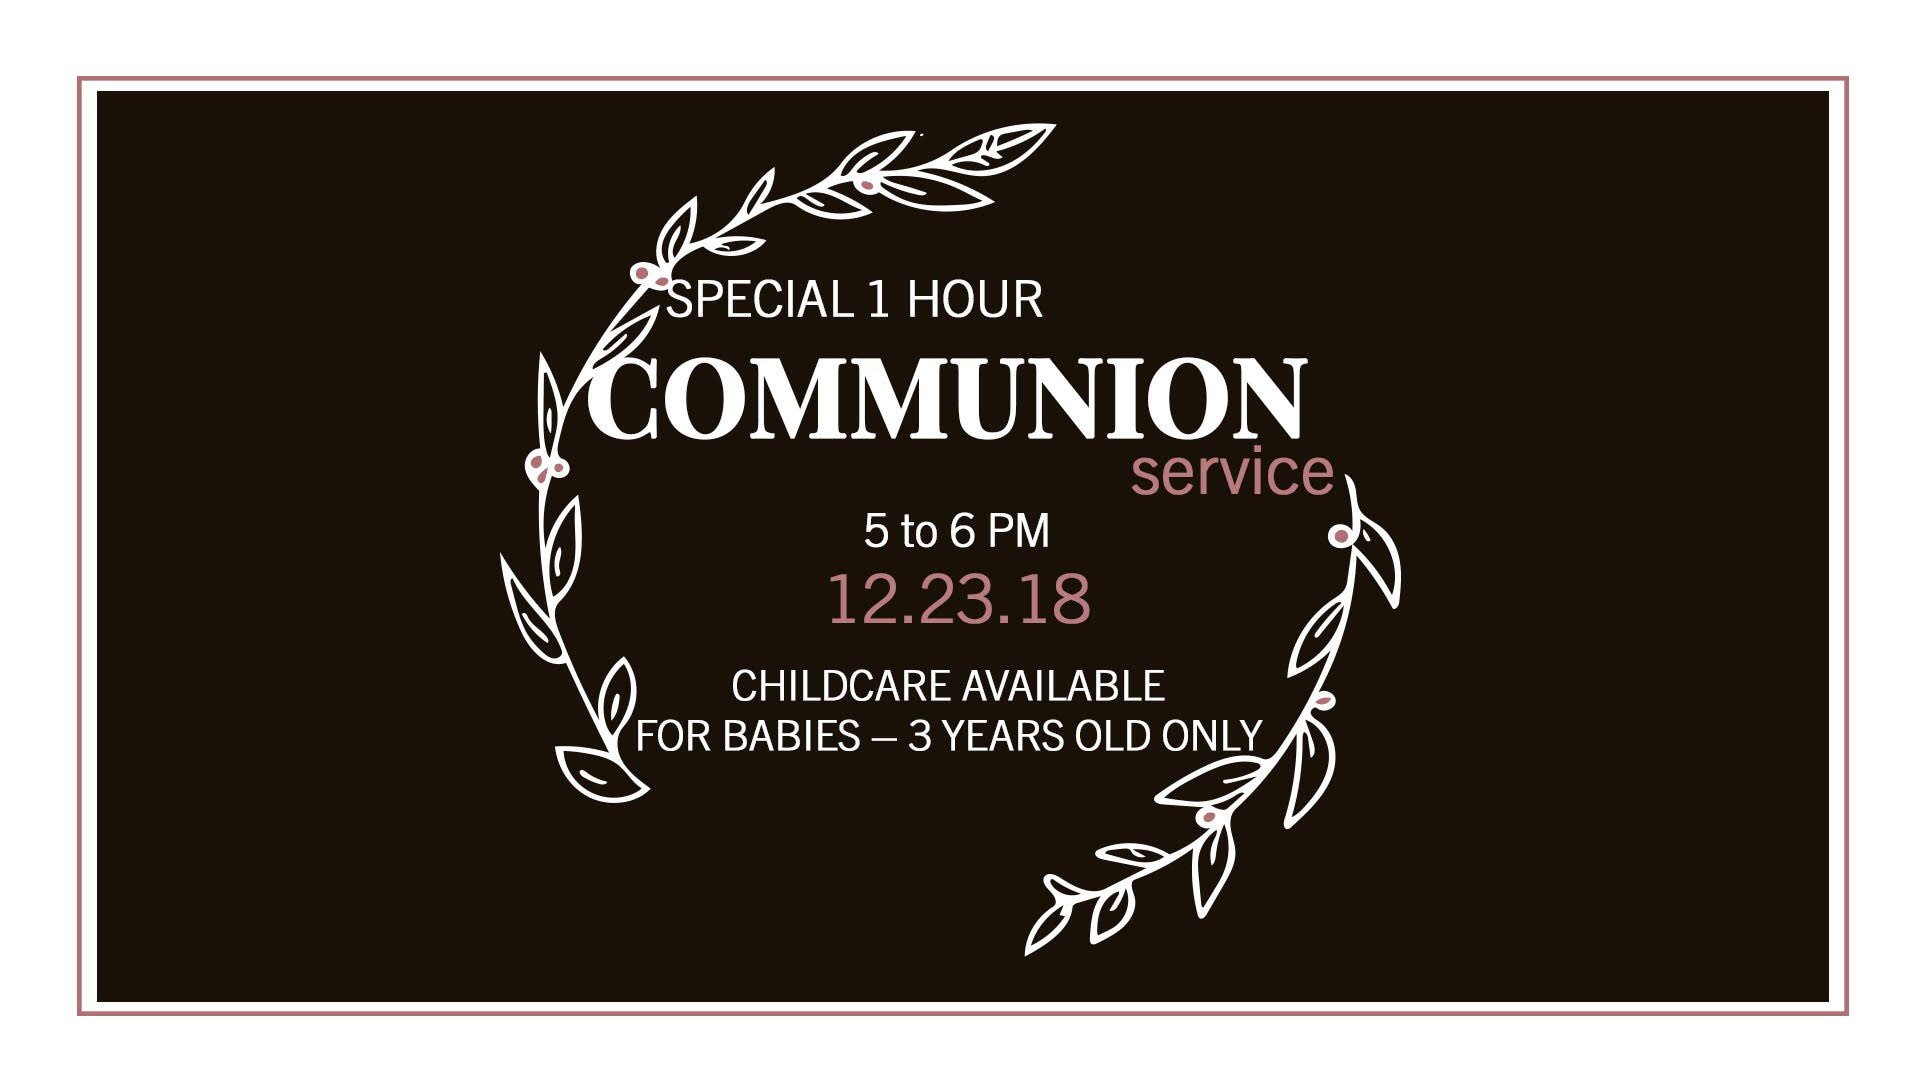 MH Church 1 Hour Communion Service December 23 2018